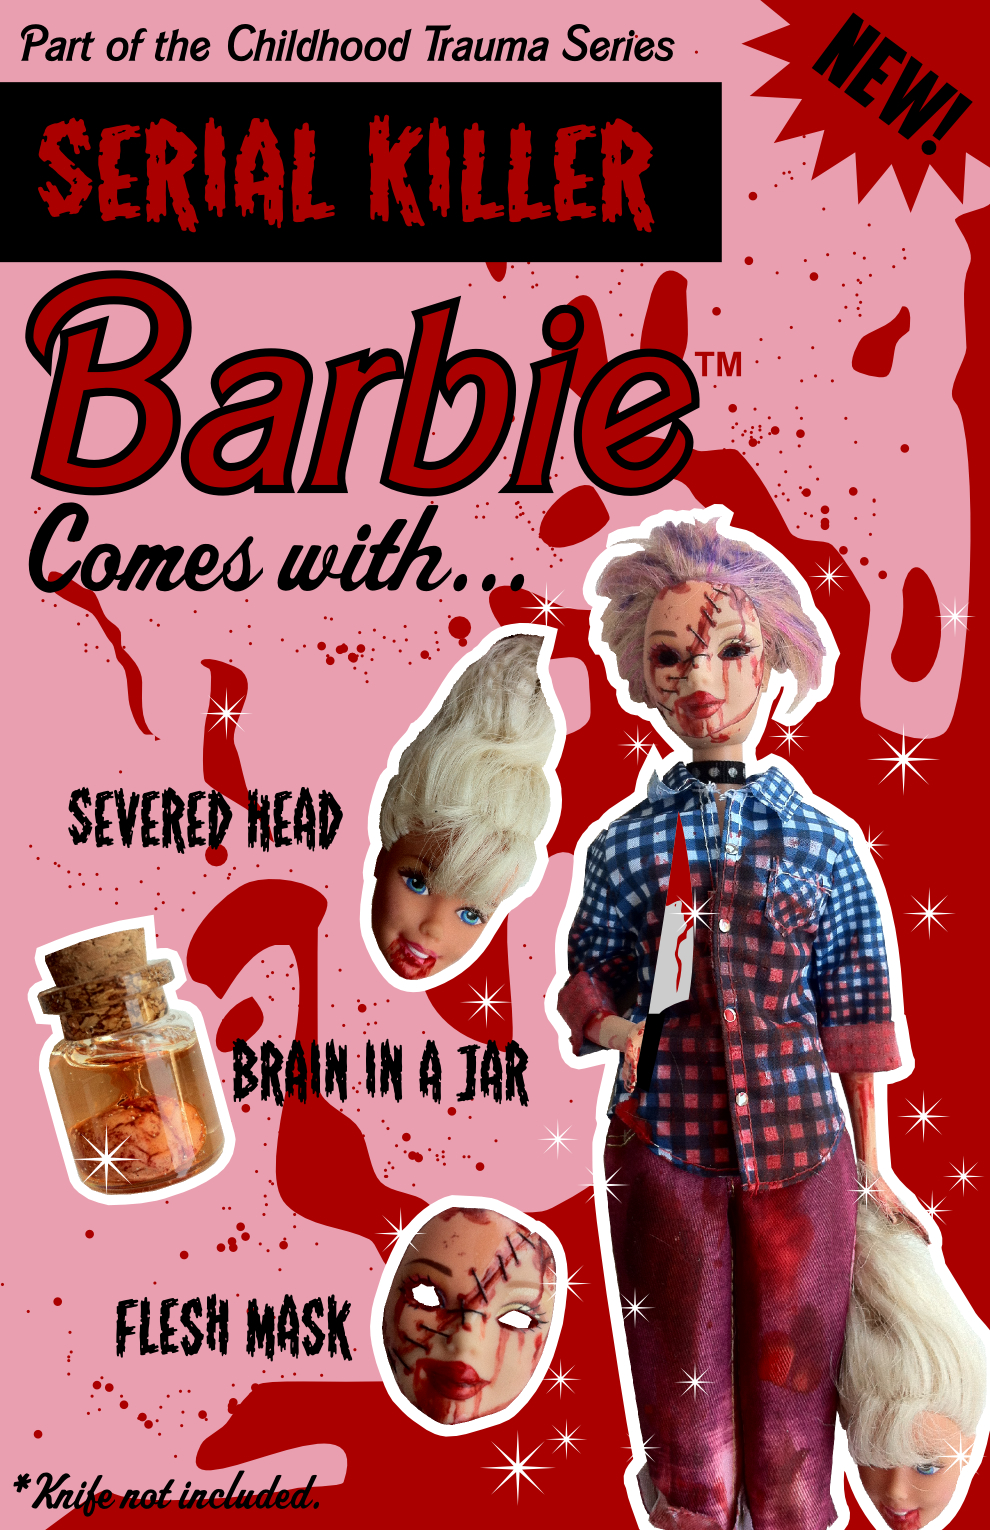 Serial Killer Barbie